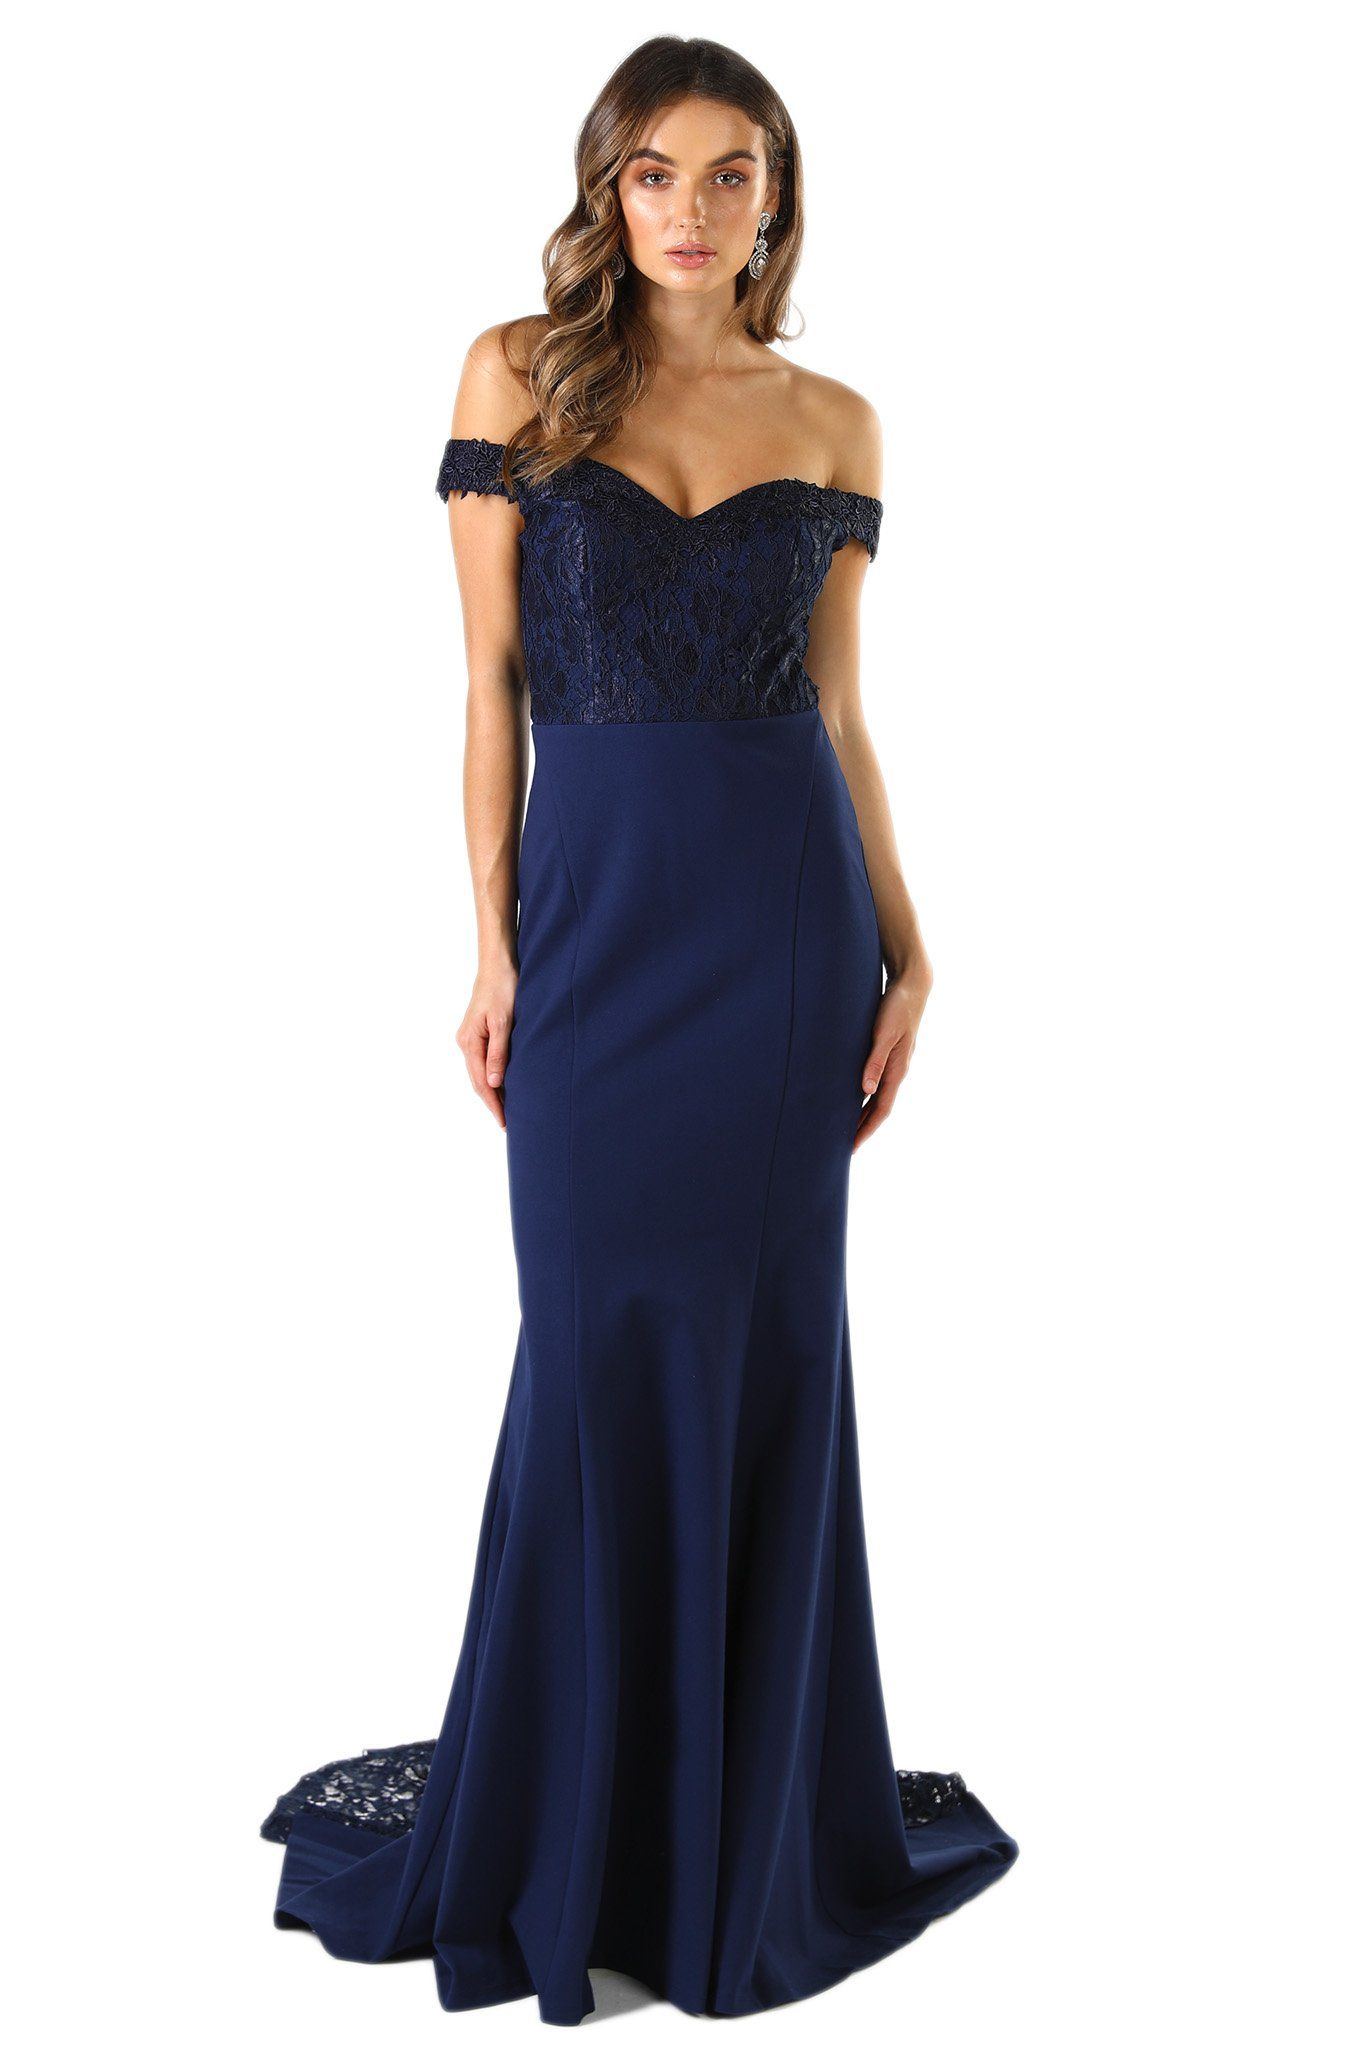 Navy Dark Blue Floor Length Formal Dress in Open Off The Shoulder Design, Lace Bodice and Lace Godet Train